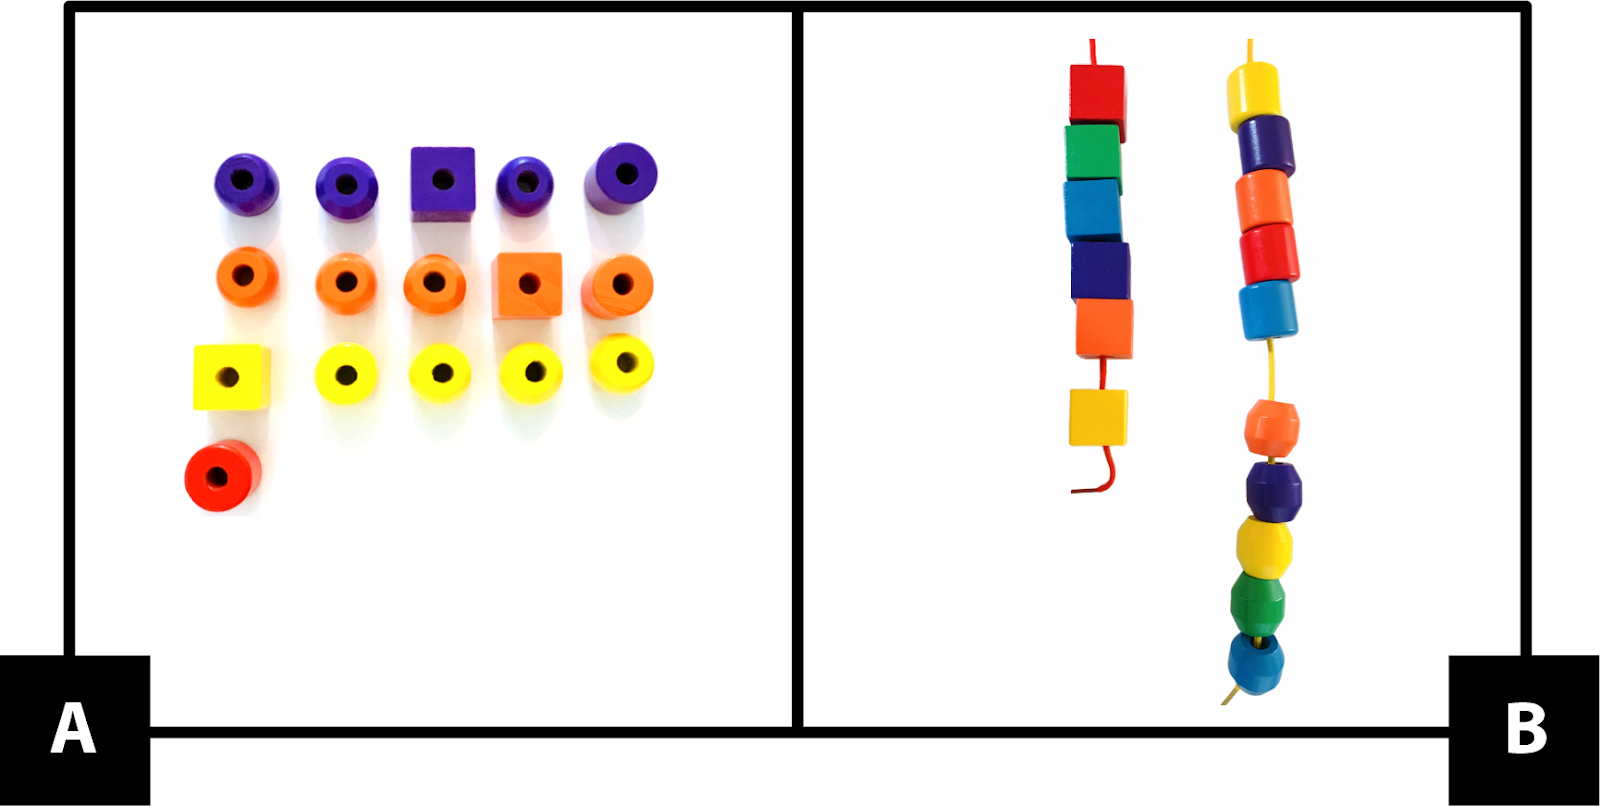 A: Four rows of wooden beads. First, 5 purple beads. 1 is a cube, the rest are cylinders or round. Next, 5 orange beads. 1 is a cube, the rest are cylinders or round. Then, 5 yellow beads. 1 is a cube, the rest are cylinders or round. Last, 1 red cylinder bead. B: Two strings with wooden beads. One string has 5 cubes plus 1 more. Each one is a different color. The second string has 5 cylinders in different colors, then 5 round beads in different colors.